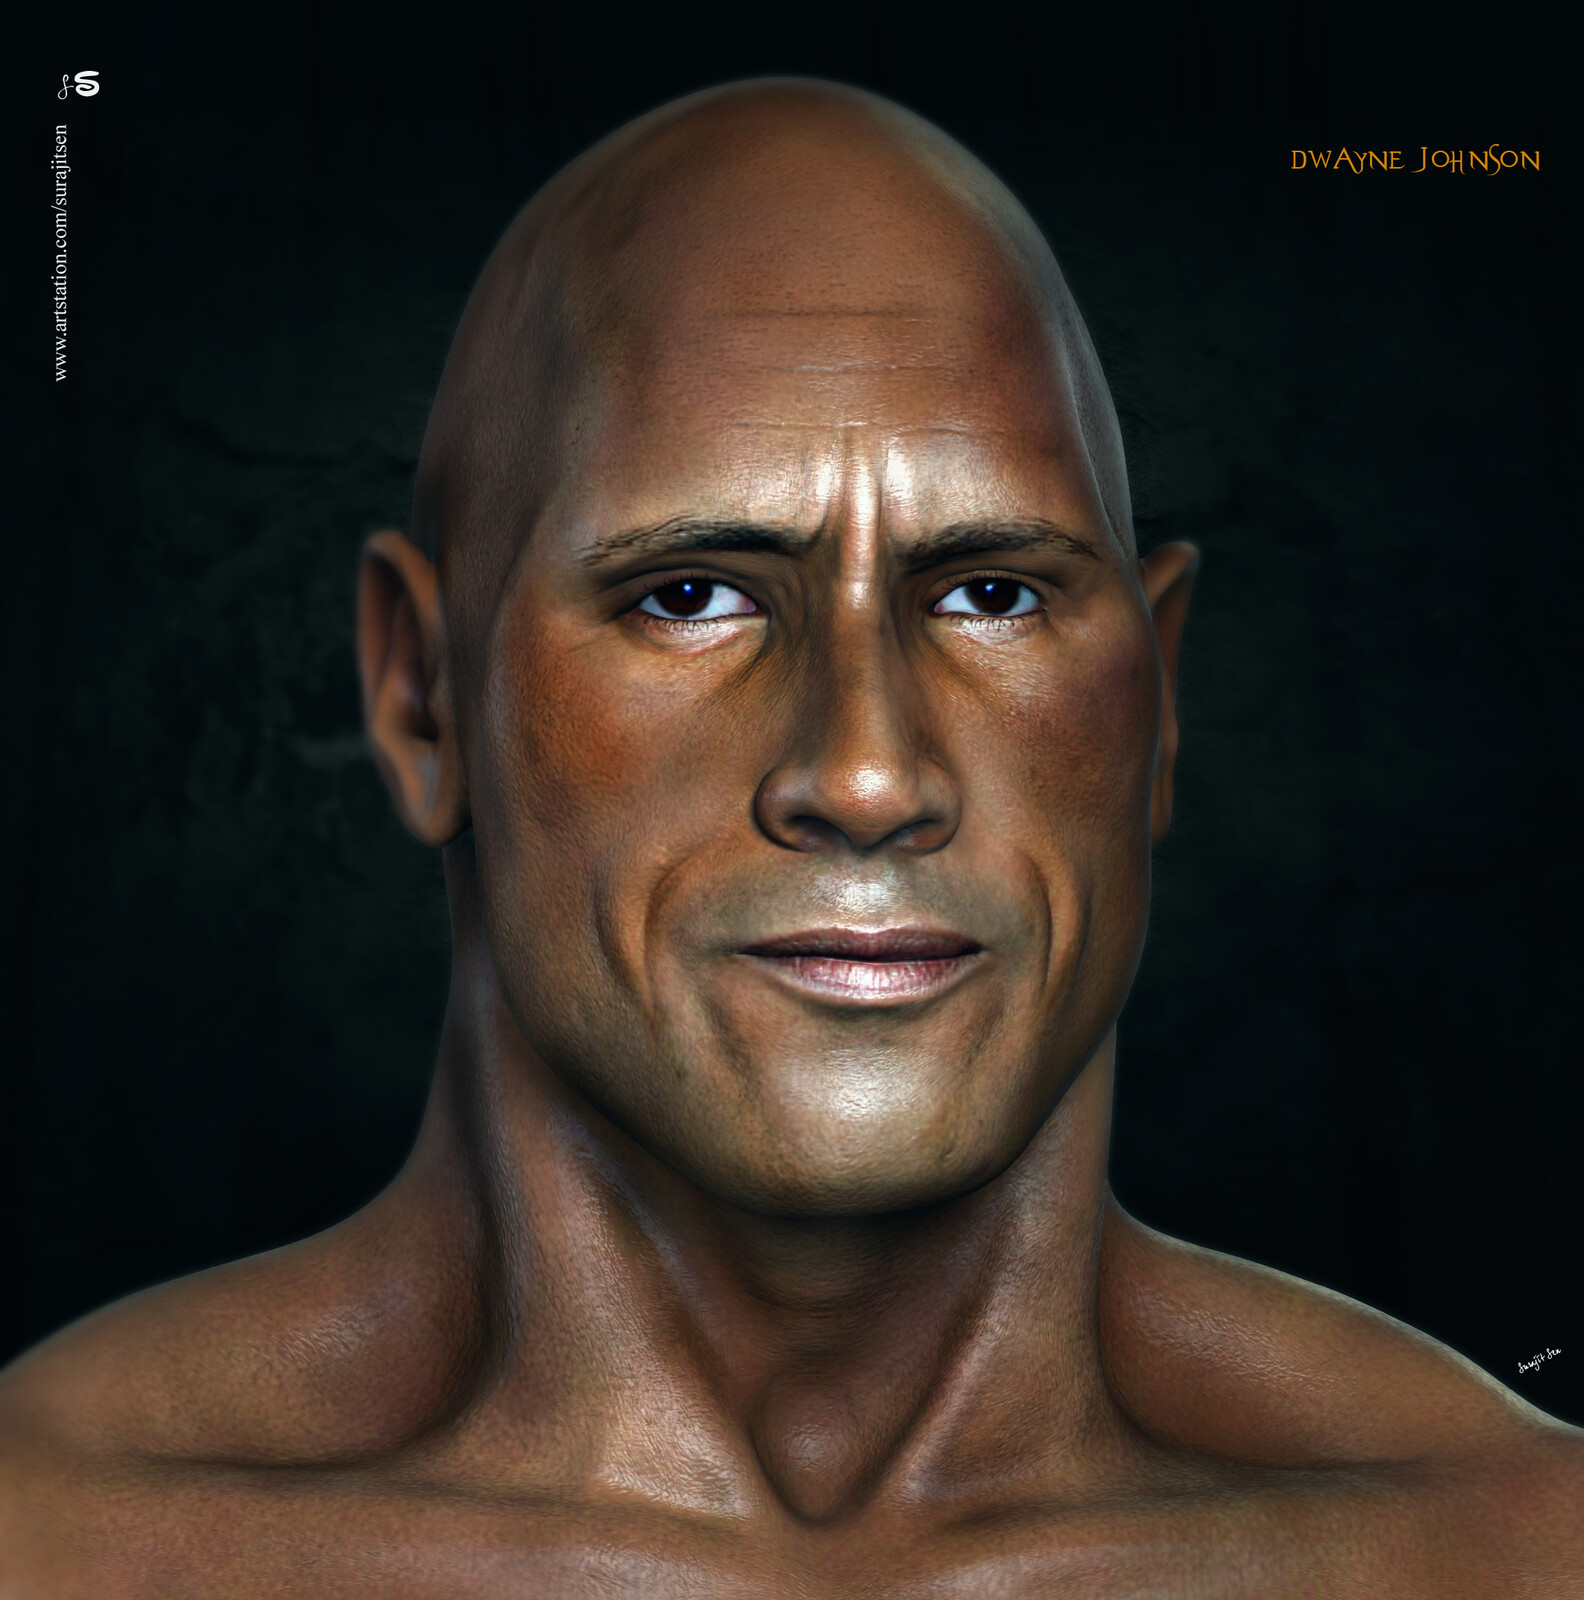 This weekend I have updated one of my old creations. Wish to share the updated version of likeness 3D Character study –  Dwayne Johnson